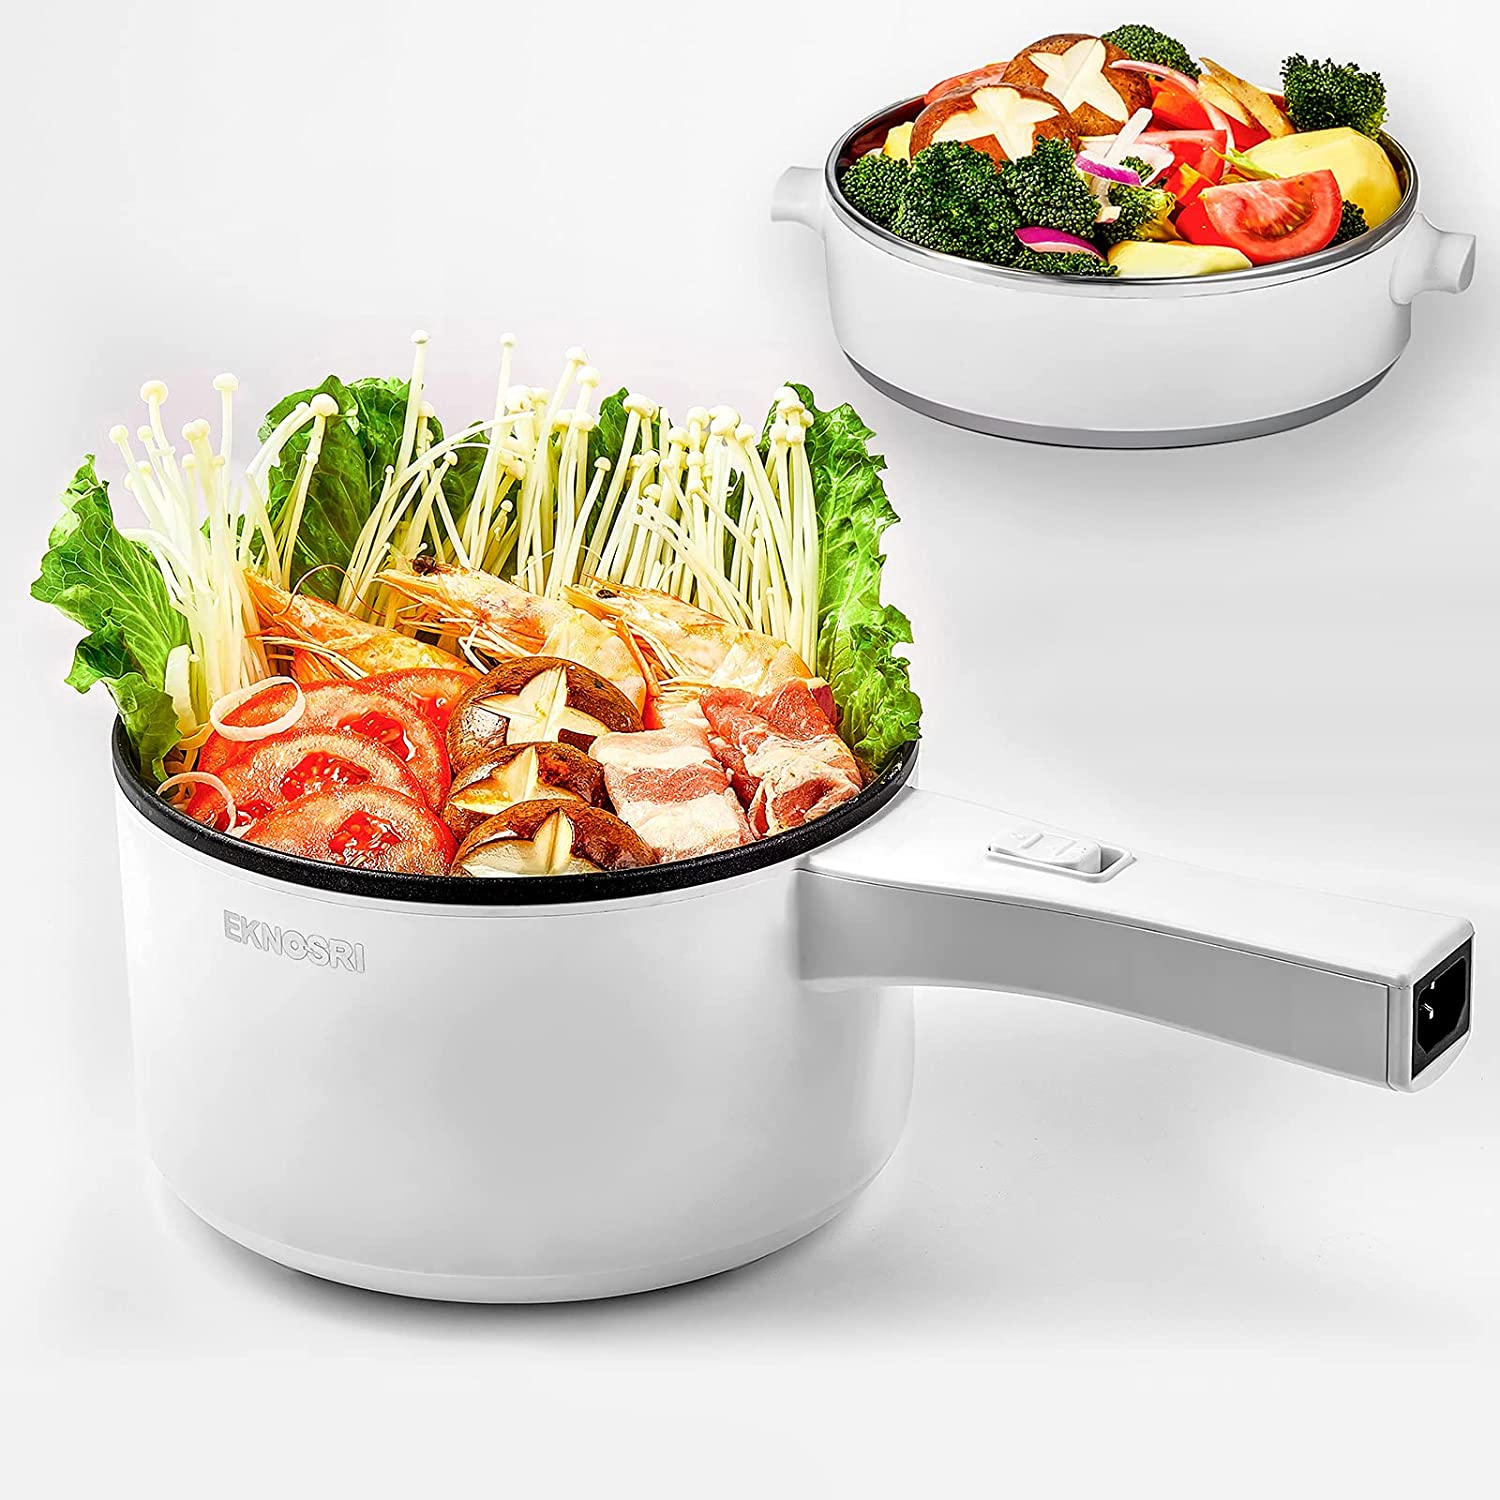 Hot Pot Electric, Mini Hot Pot with Stainless Steel Food Steamer, Non-stick 1.5L Capacity Pot and Adjustable Temperature (350W~700W) for Rapid Noodles Cook, Egg, Steak, Steam, Oatmeal and Soup Cooker - Pure White